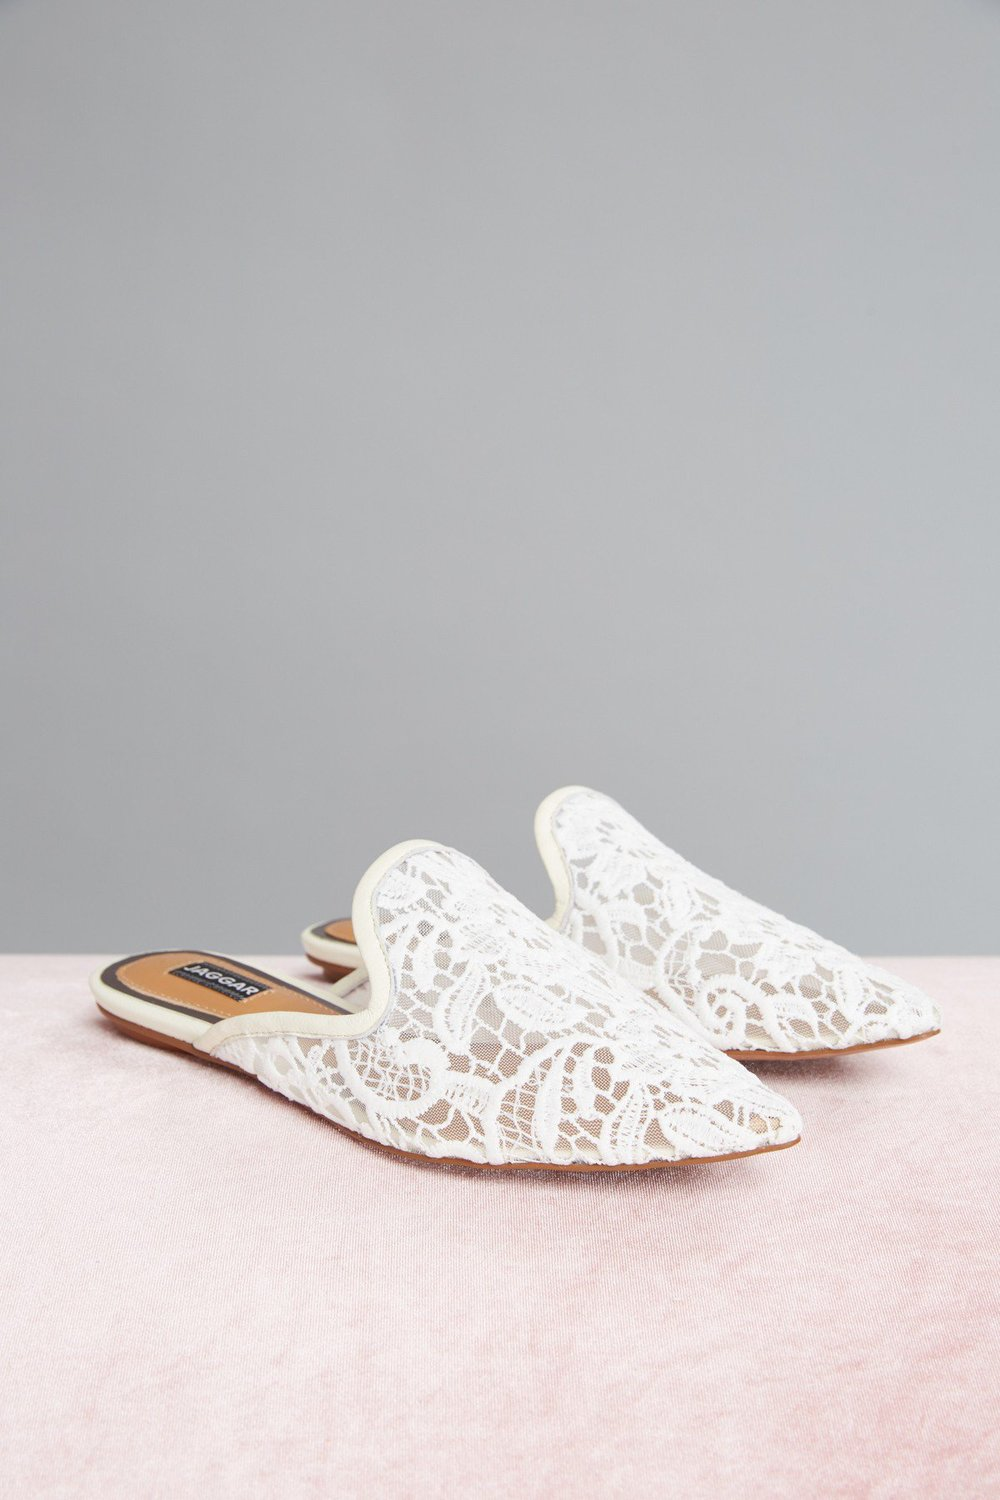 Shop JAGGAR Aside Lace Flat in chalk.